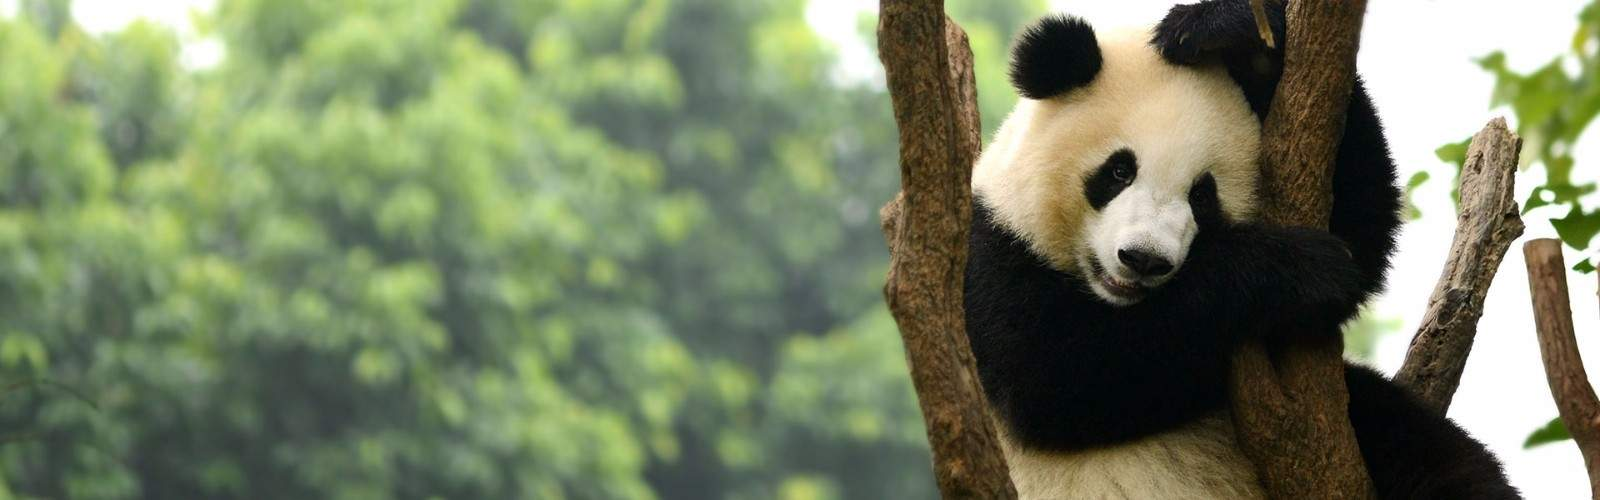 In Pursuit of Pandas Private Tour Tour | Wendy Wu Tours